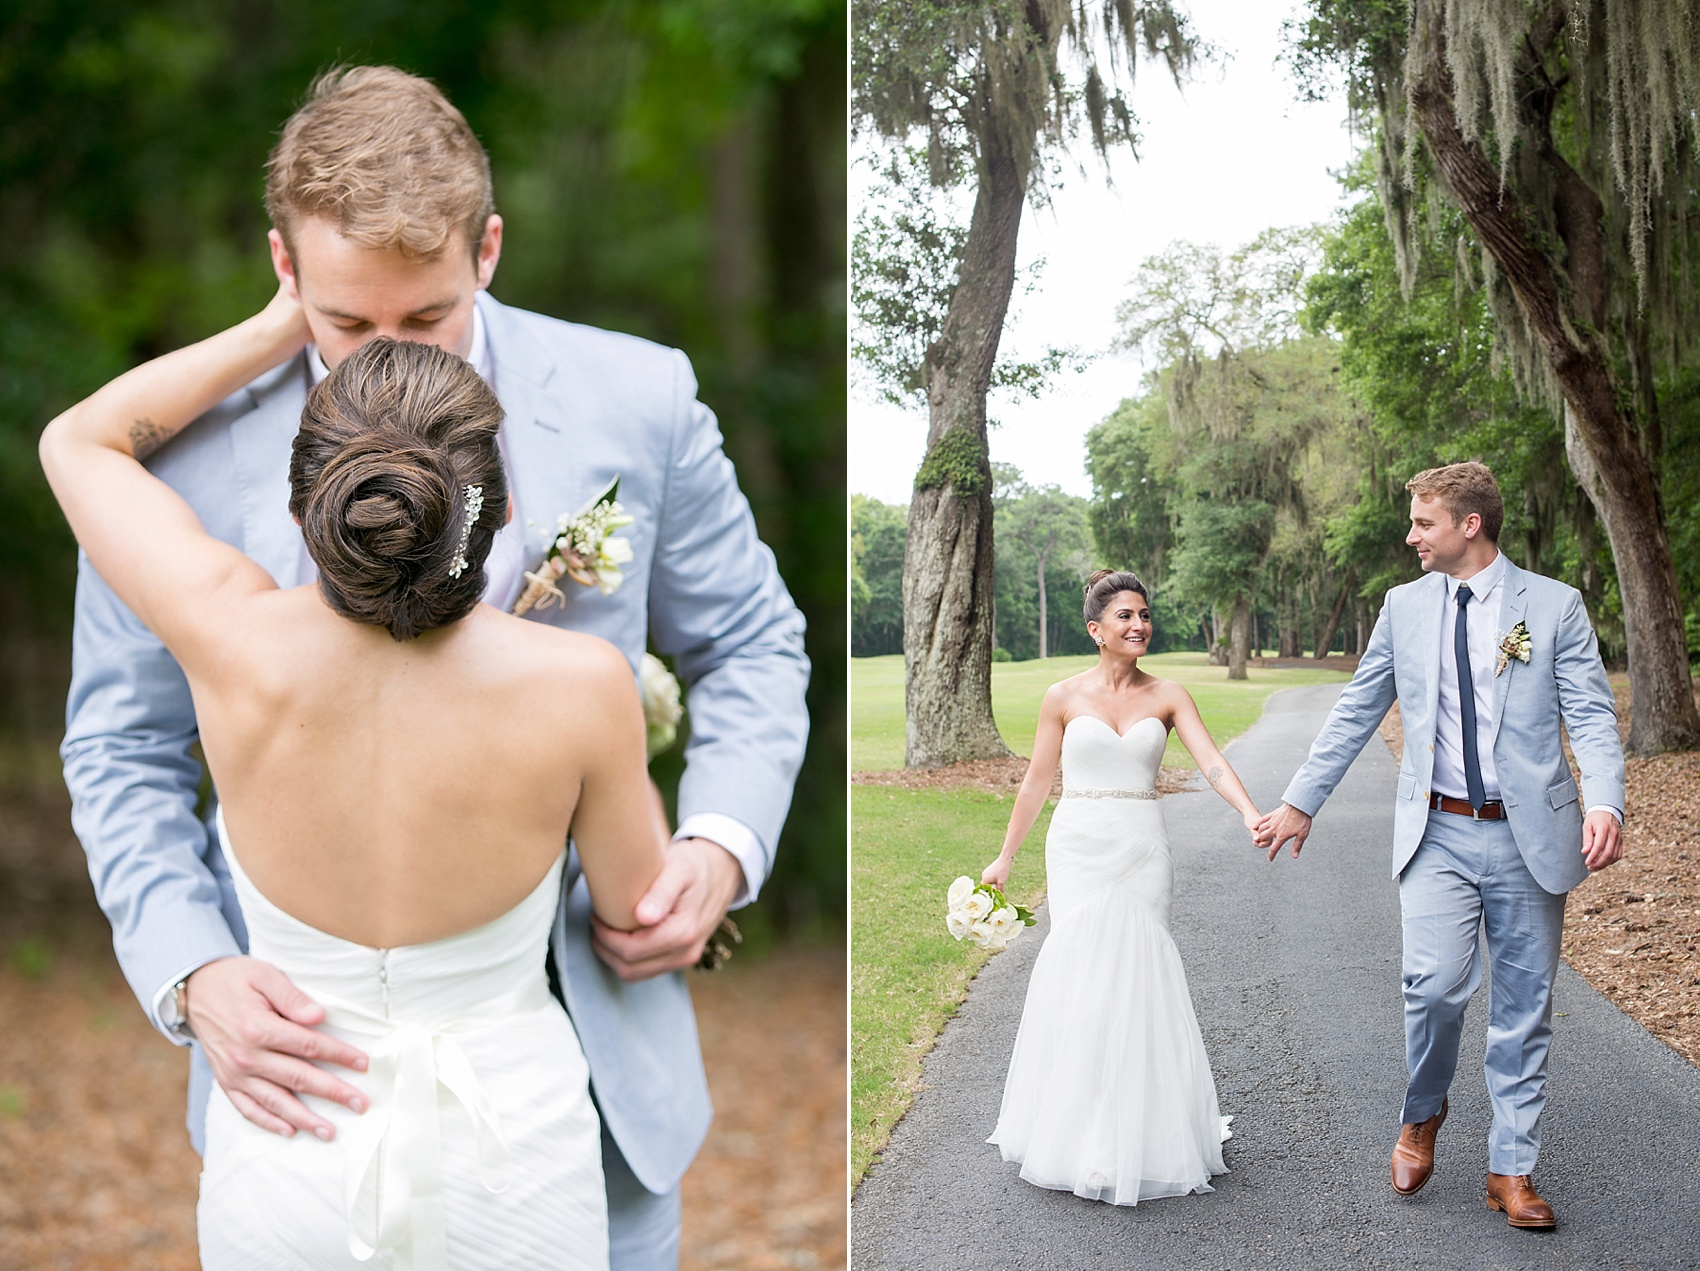 Bride and groom photos in Haig Point, South Carolina, off the coast of Hilton Head on the golf course at Daufuskie Island. Photos by Mikkel Paige Photography.